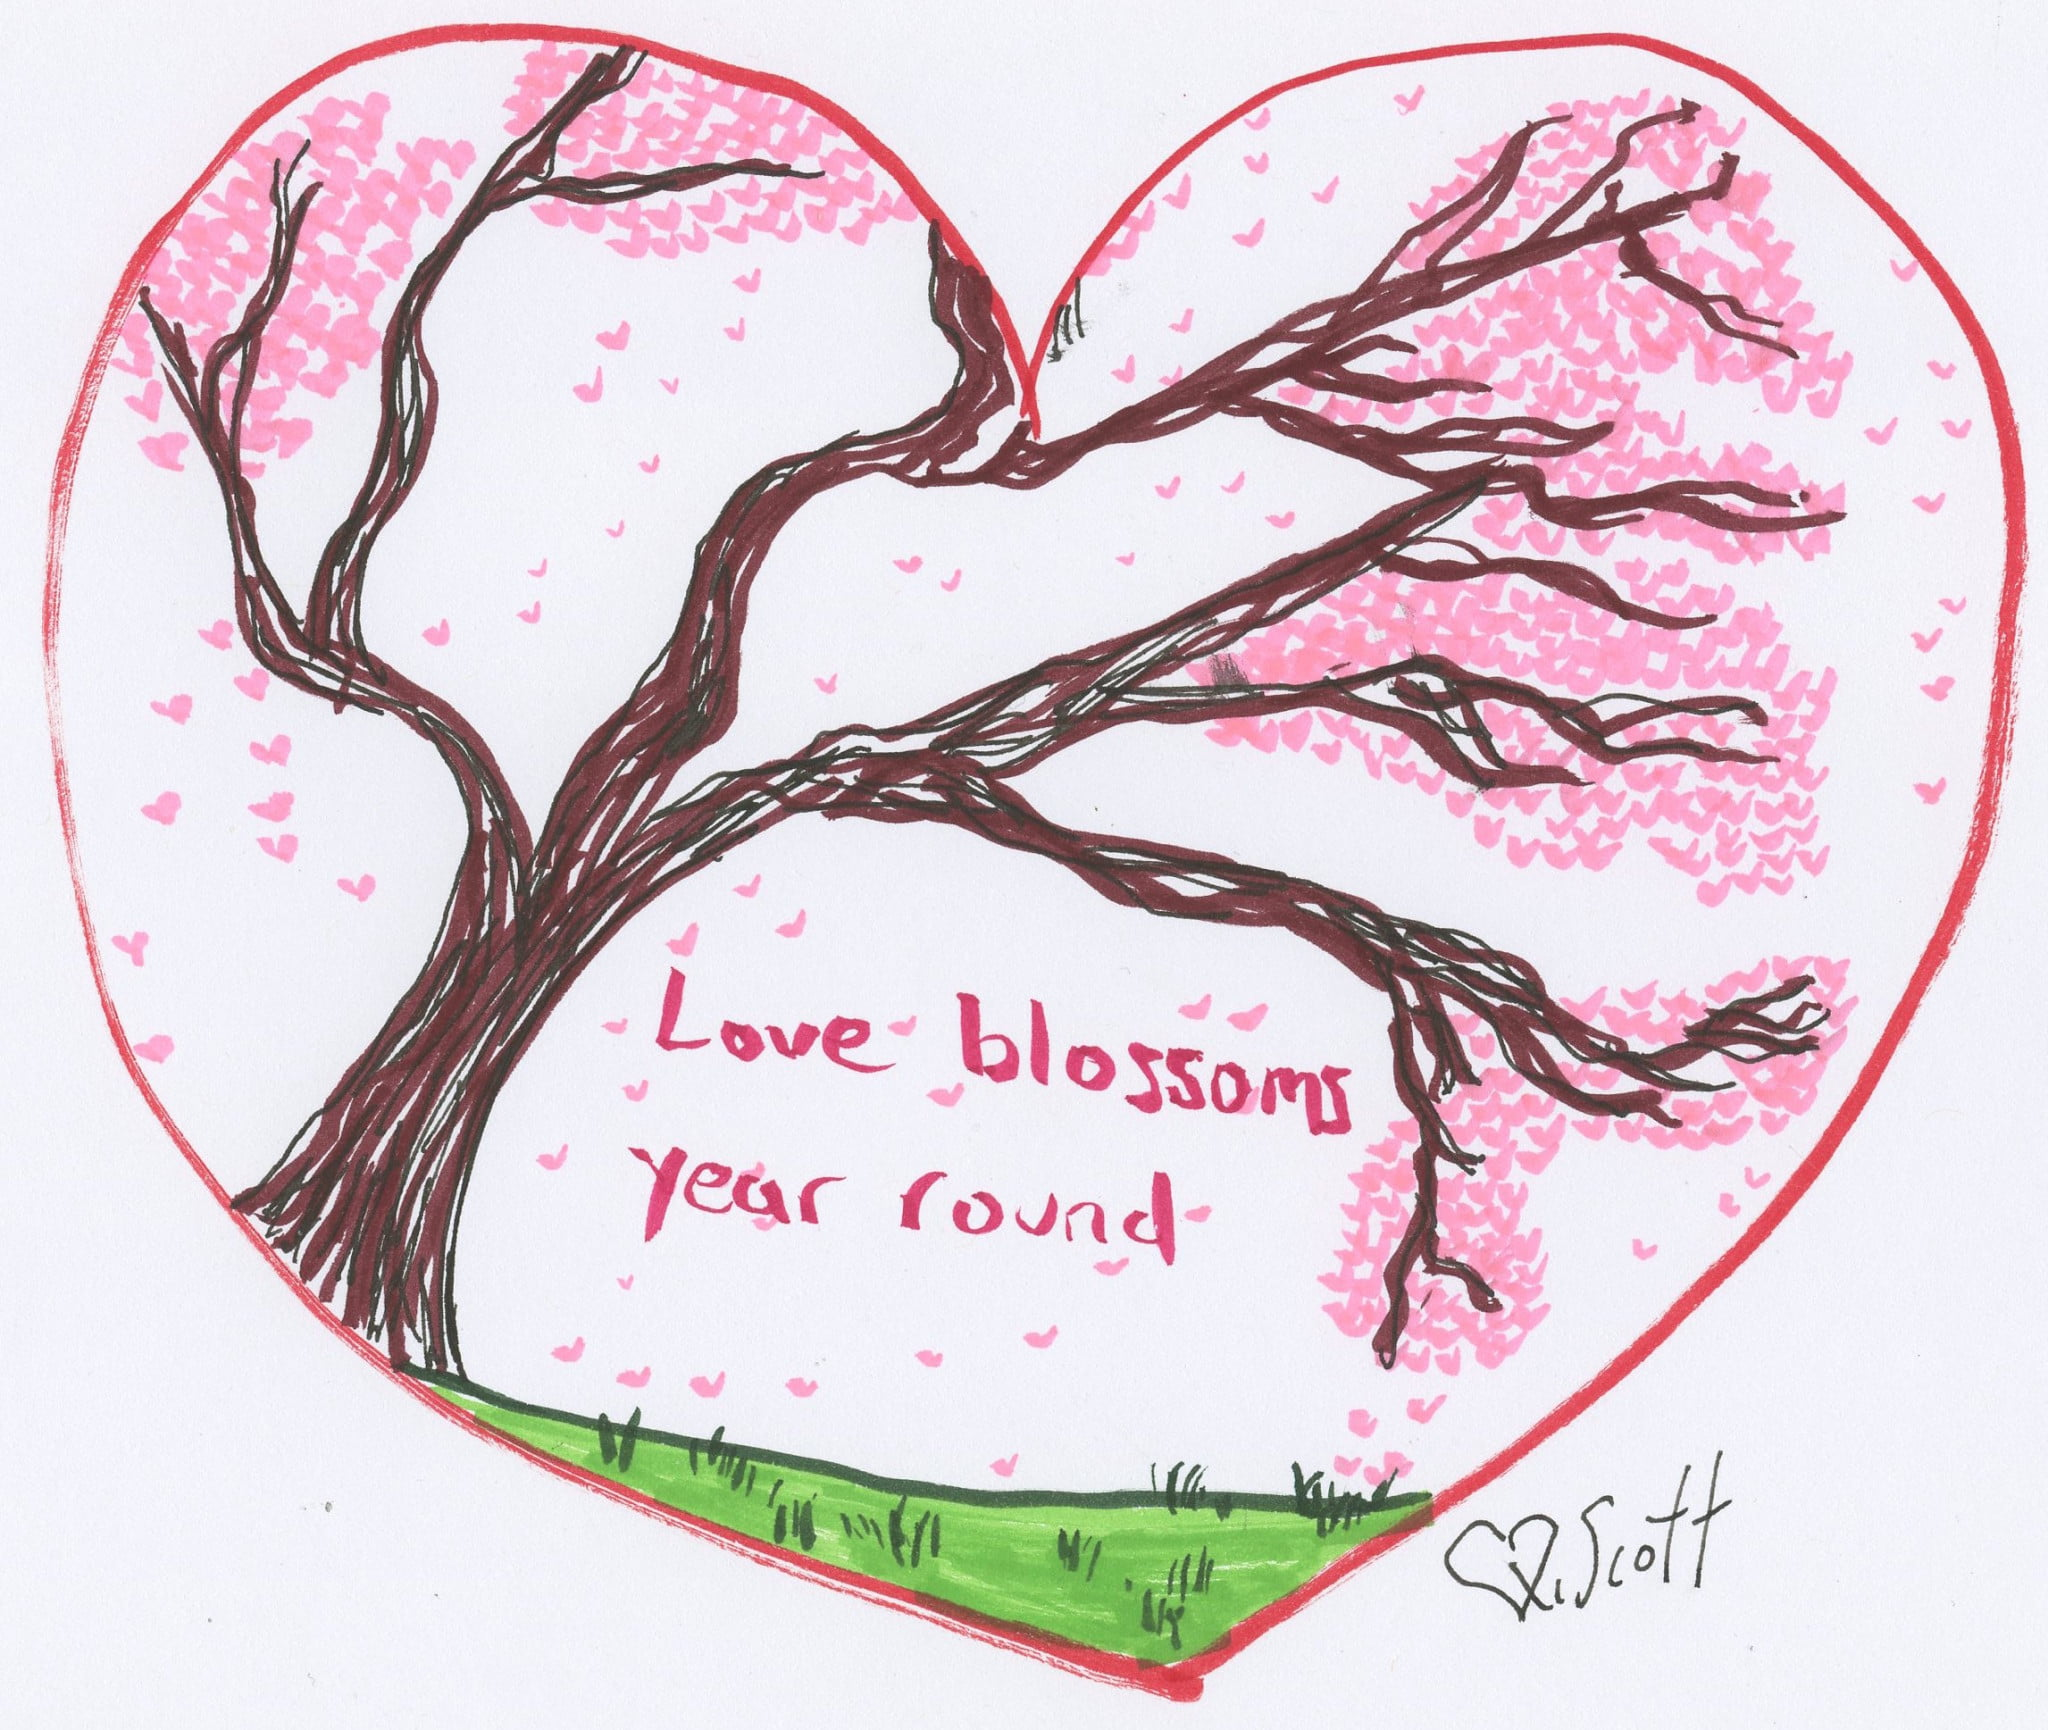 Love blossoms year round